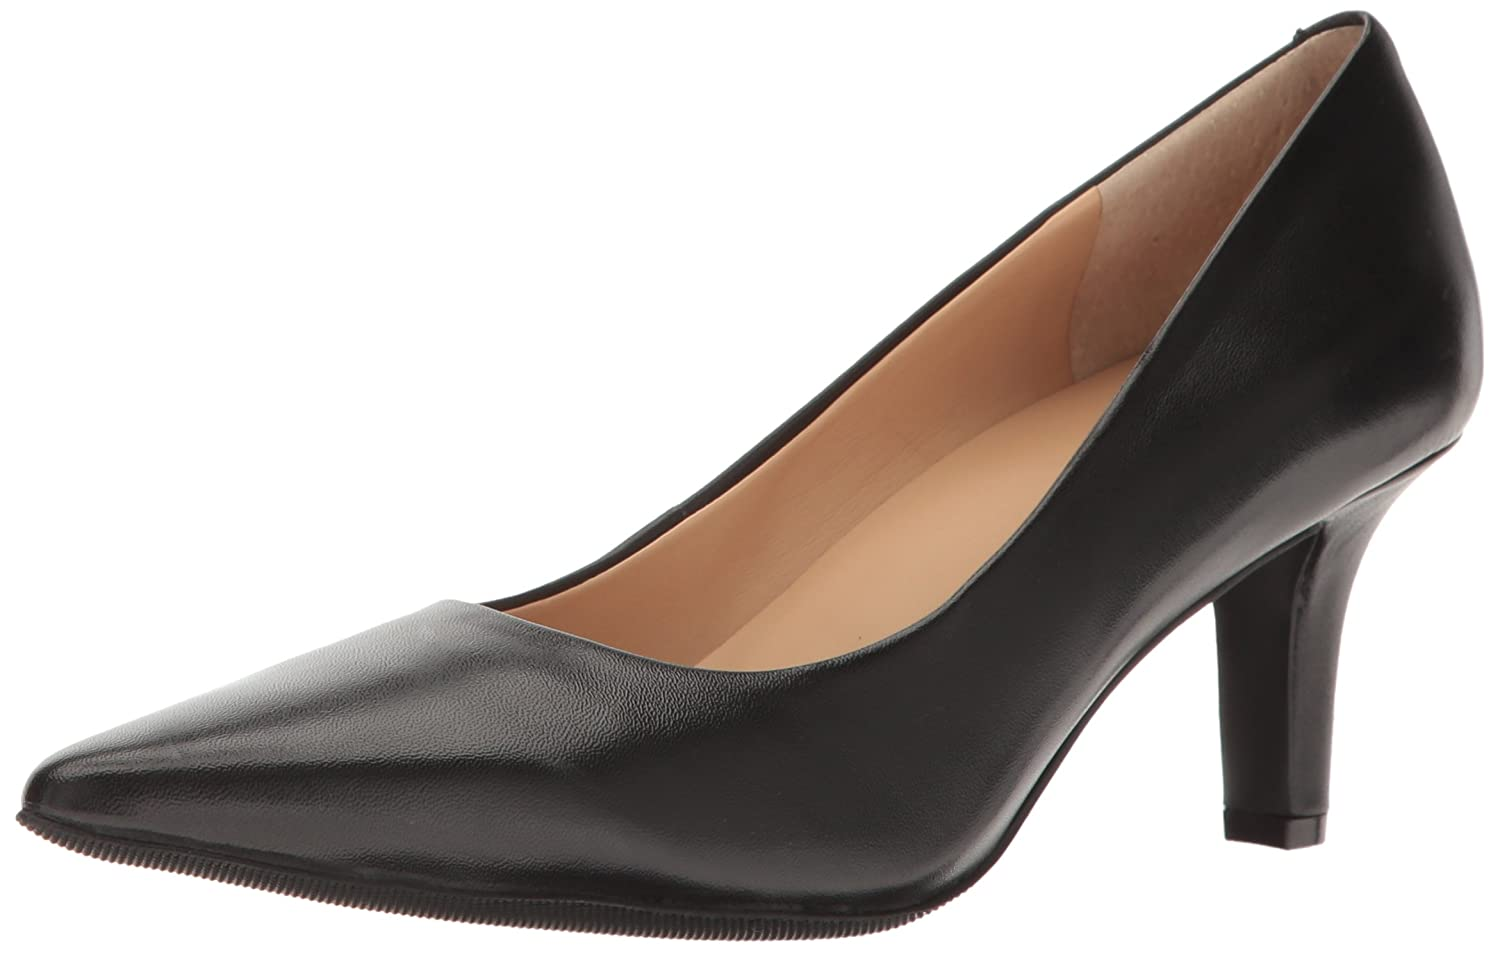 Trotters Women's Noelle Dress Pump B01HMZNJJY 8 W US|Black